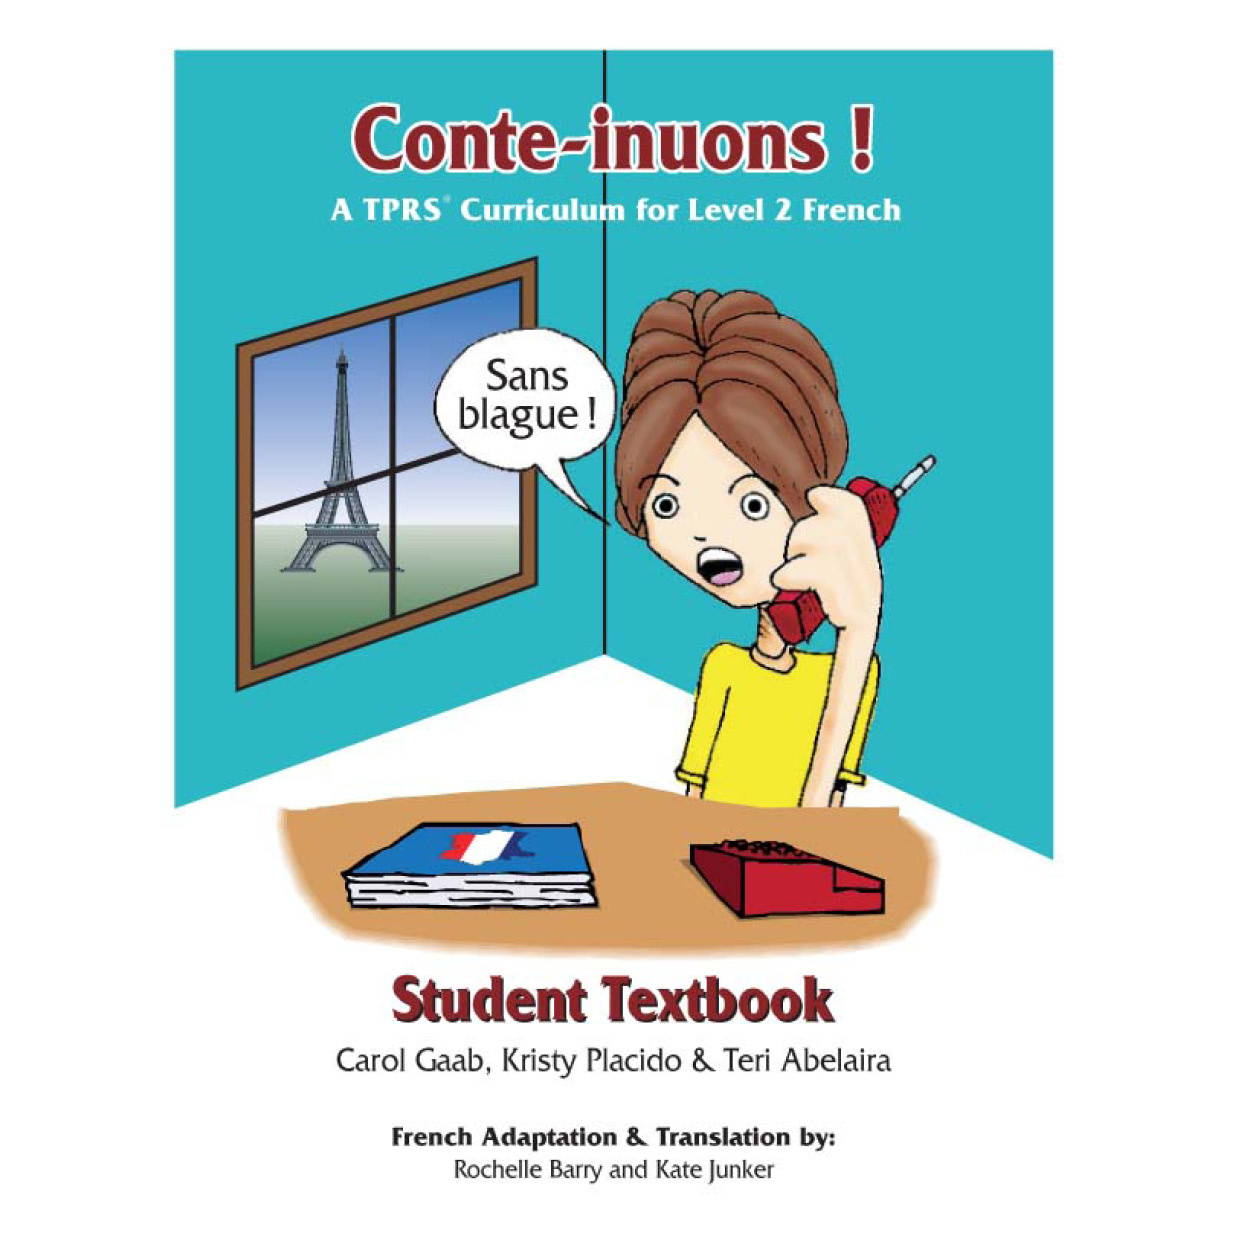 Conte-inuons! Student Textbook